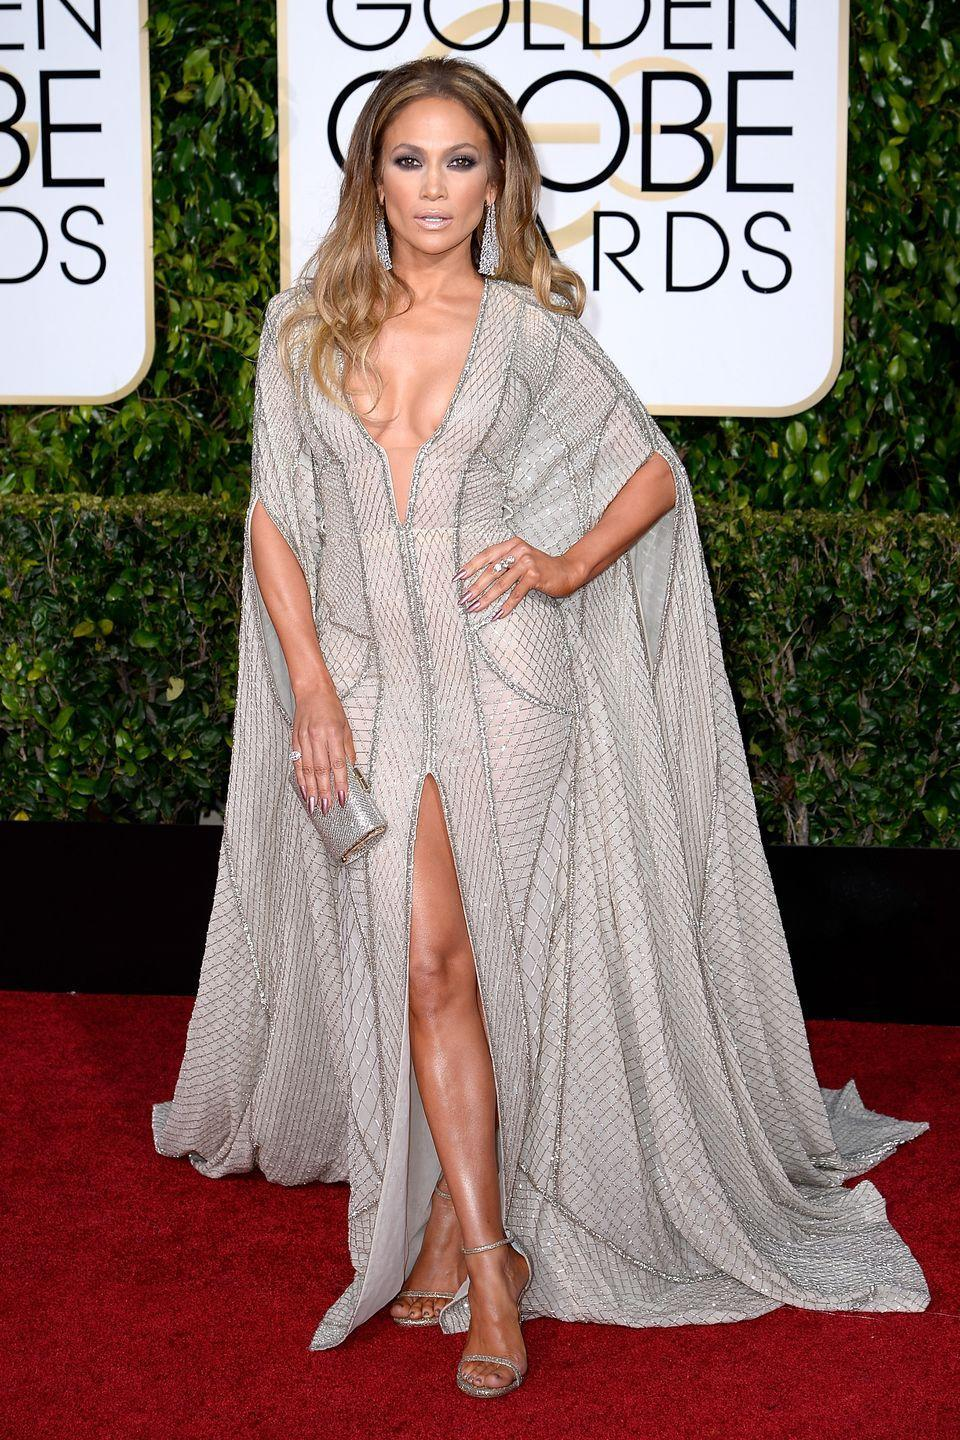 <p>Lopez brought the drama in this caftan-inspired in Zuhair Murad dress in 2015.</p>